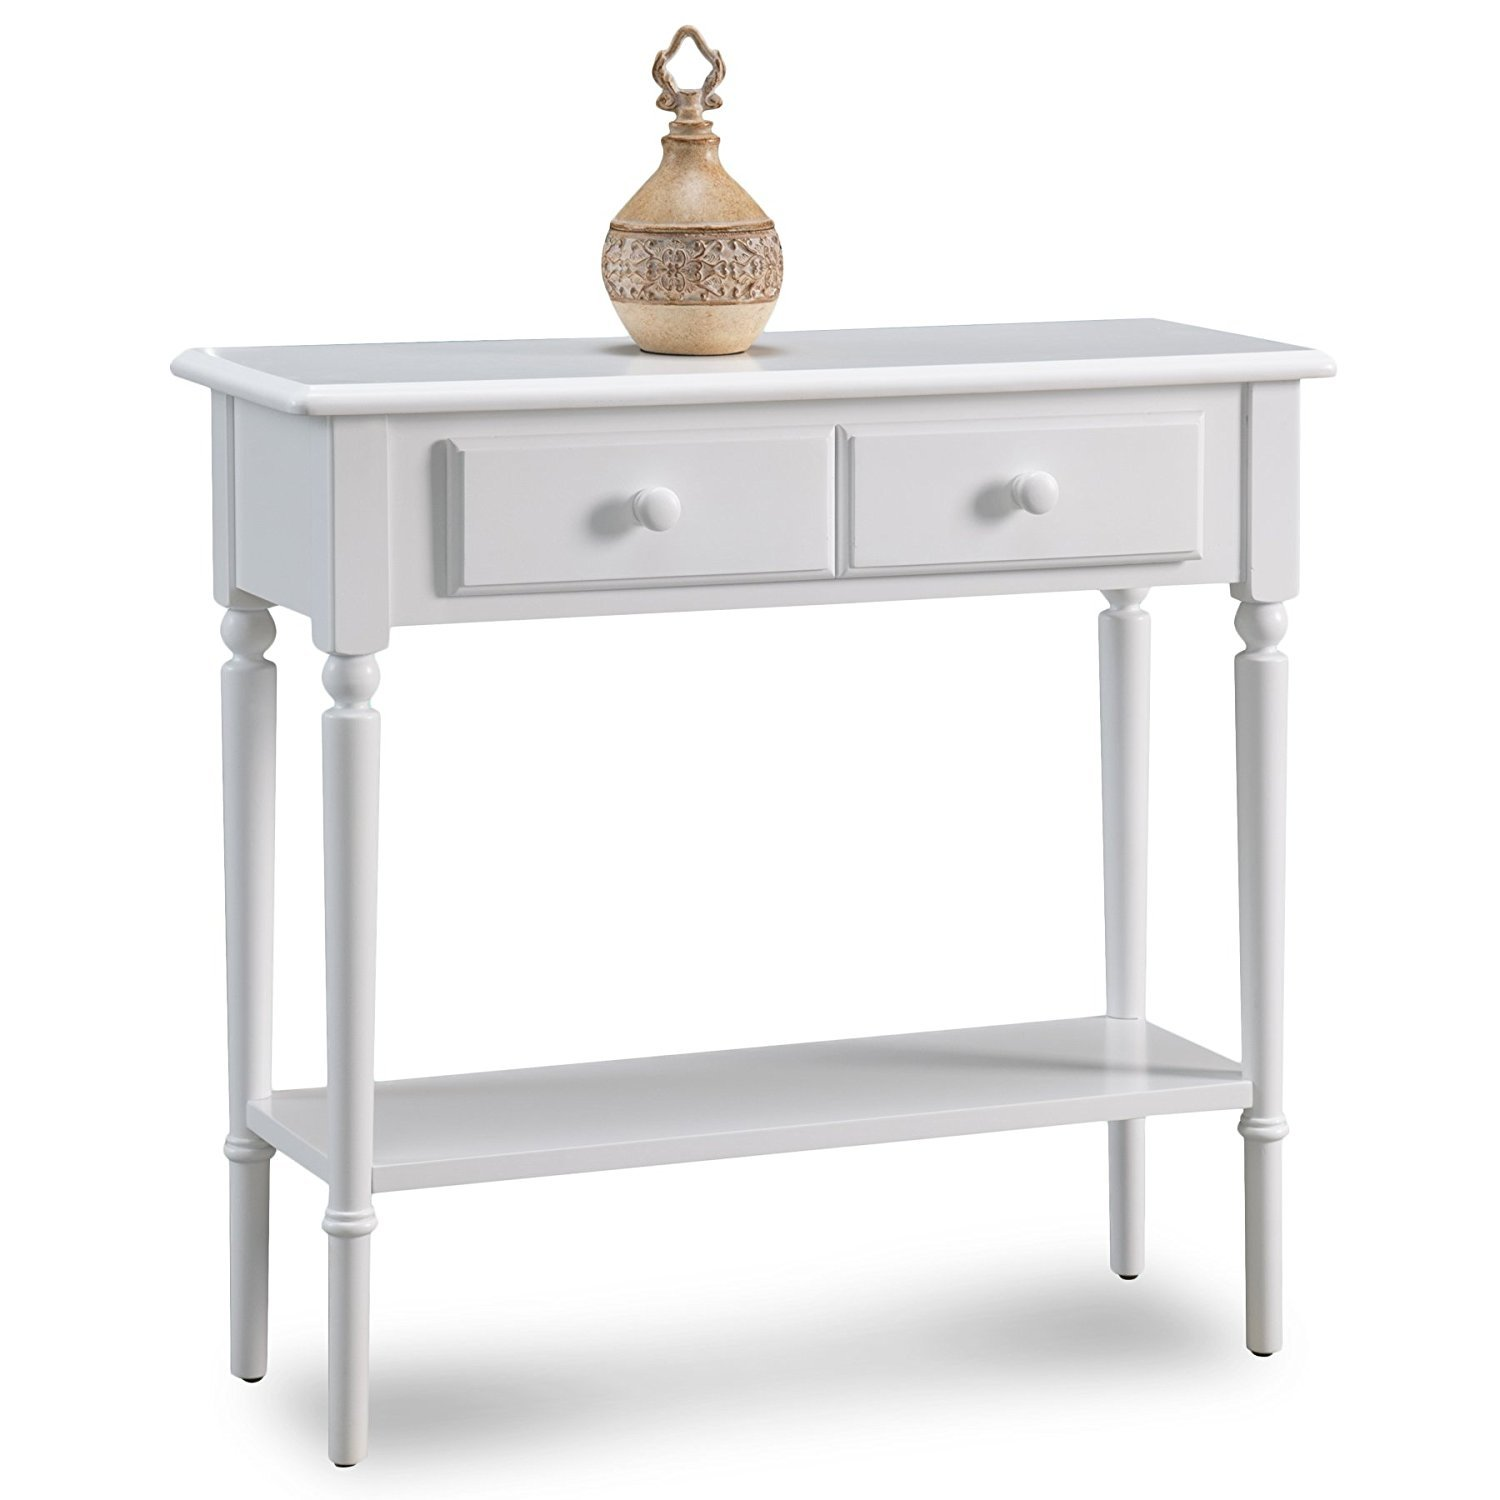 Leick 20027-WT Coastal Narrow Hall Stand Sofa Table with Shelf, Orchid White by Leick Furniture